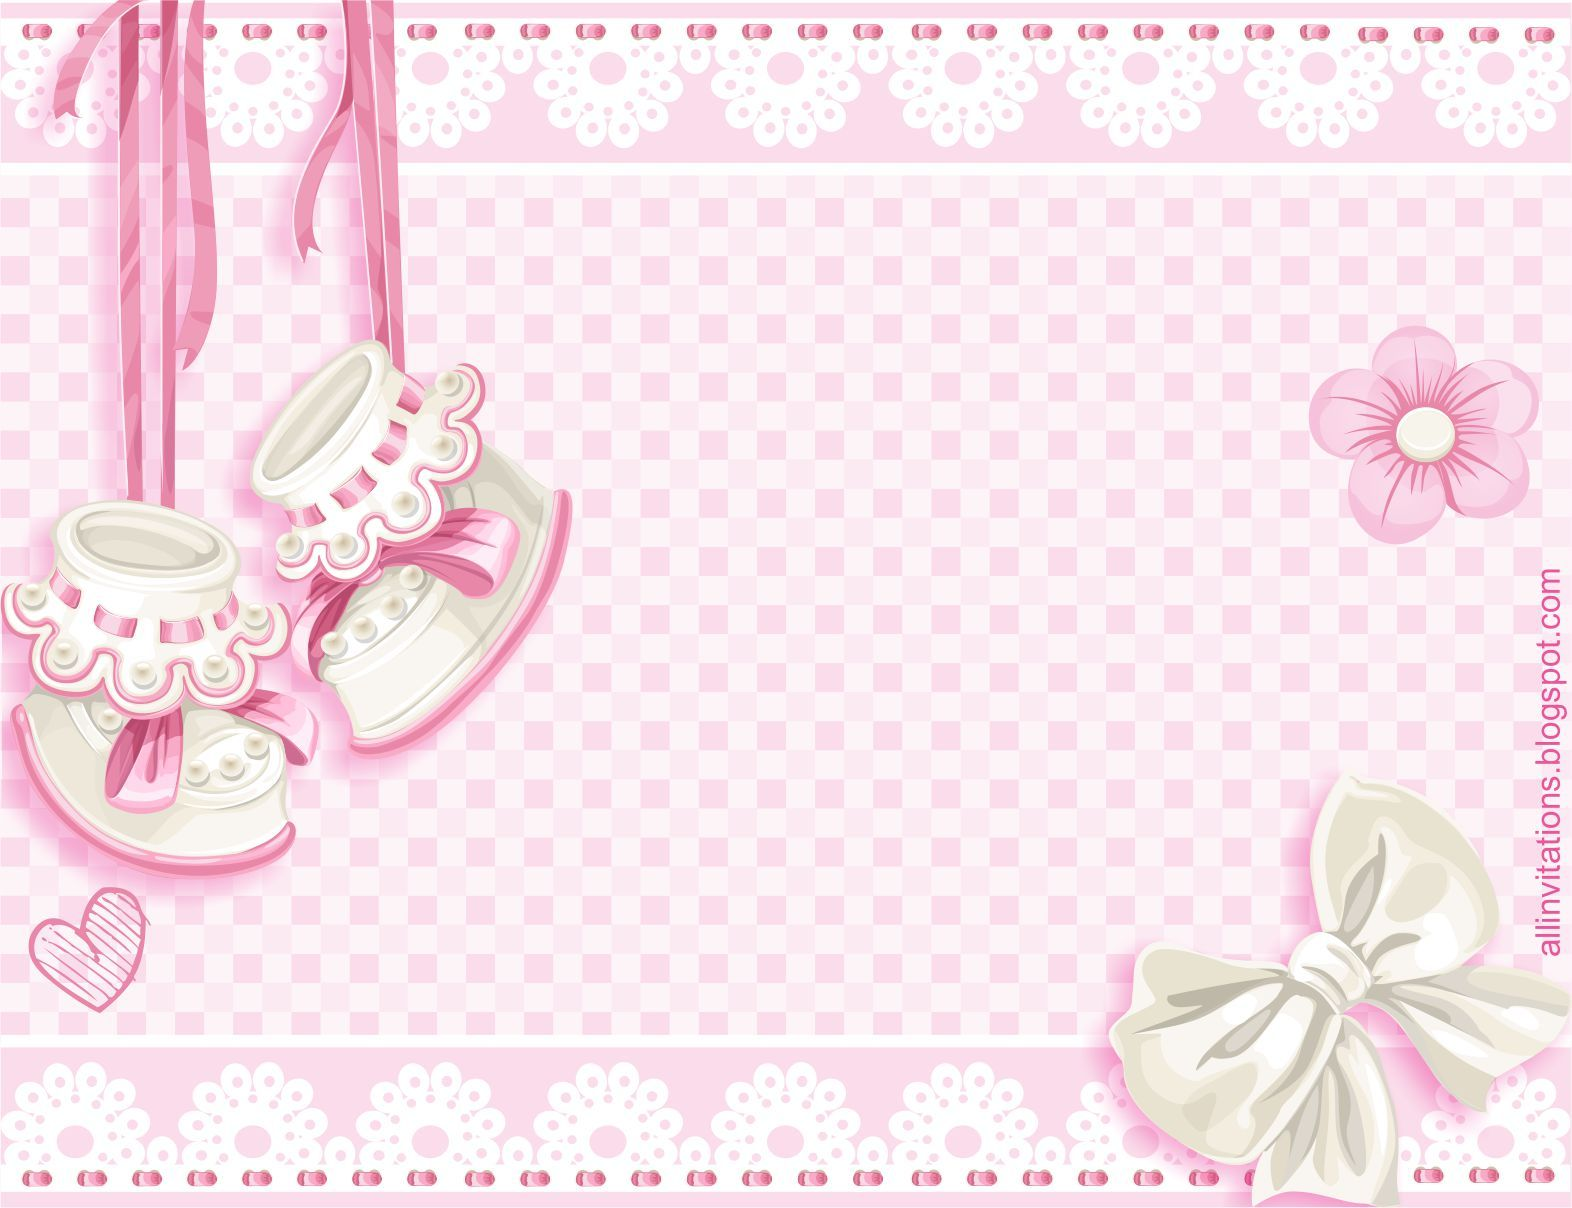 Plantilla invitacion baby shower zapatitos niña | tarjetas ...